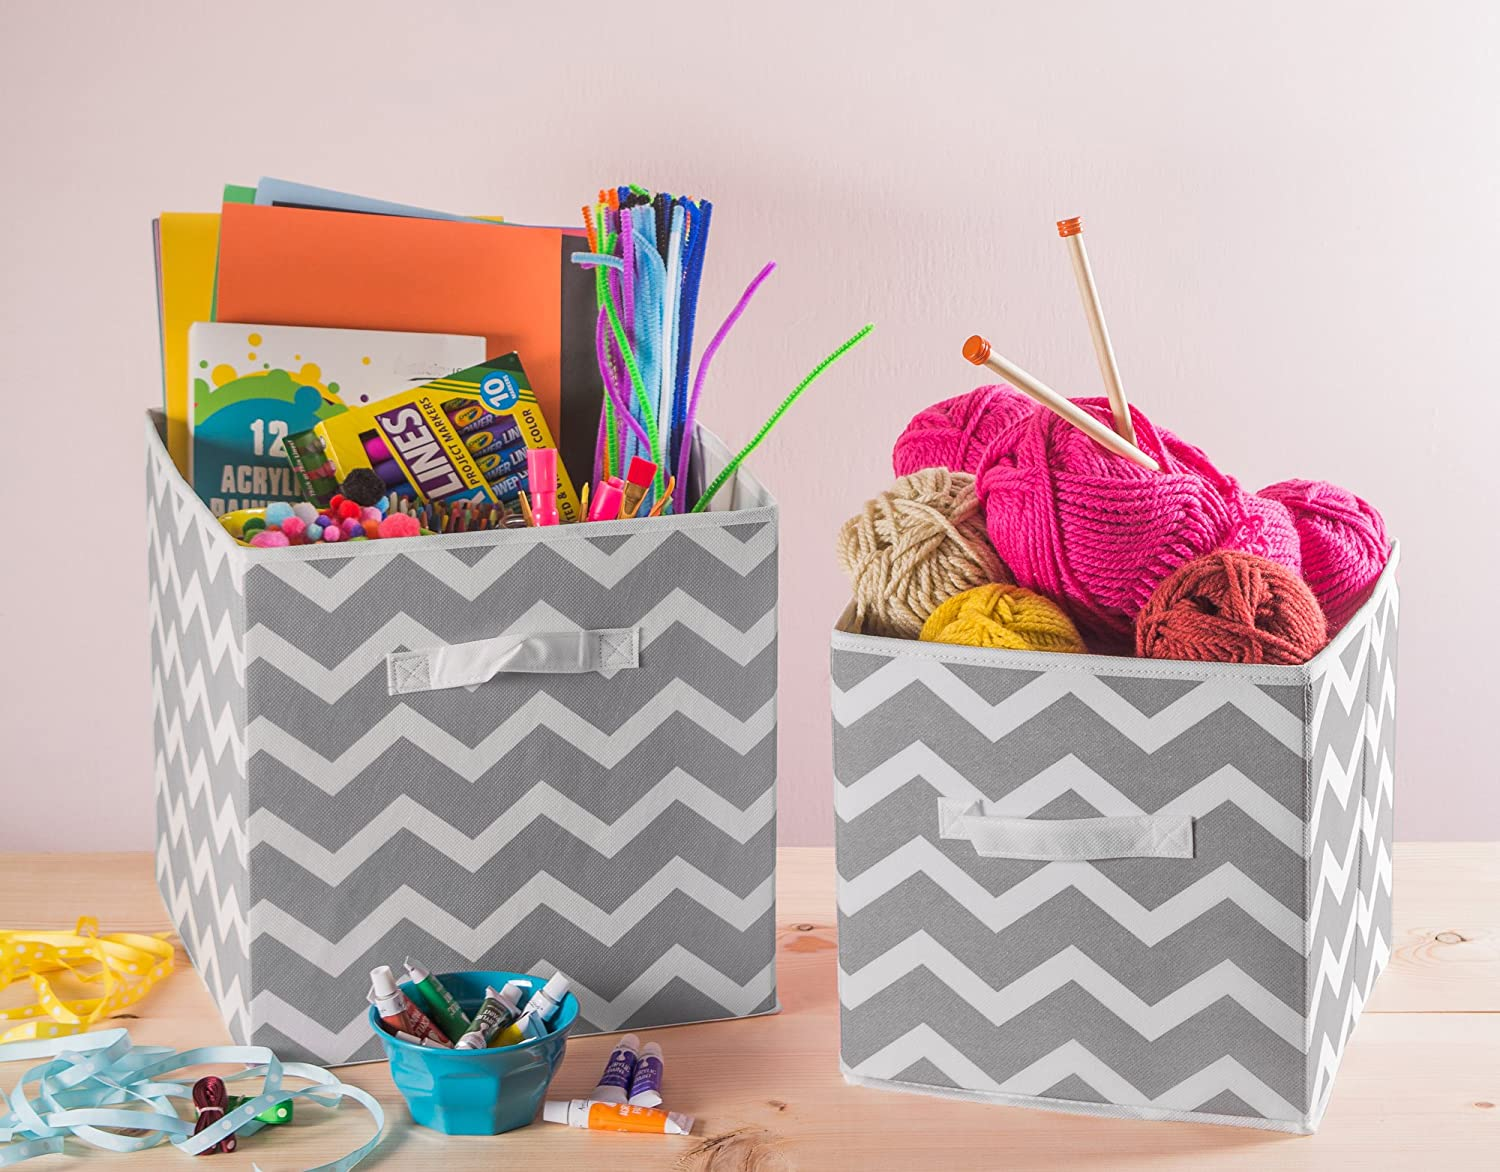 The Best Storage Container Sets (& Baskets) For Your Bathroom: Reviews & Buying Guide 10